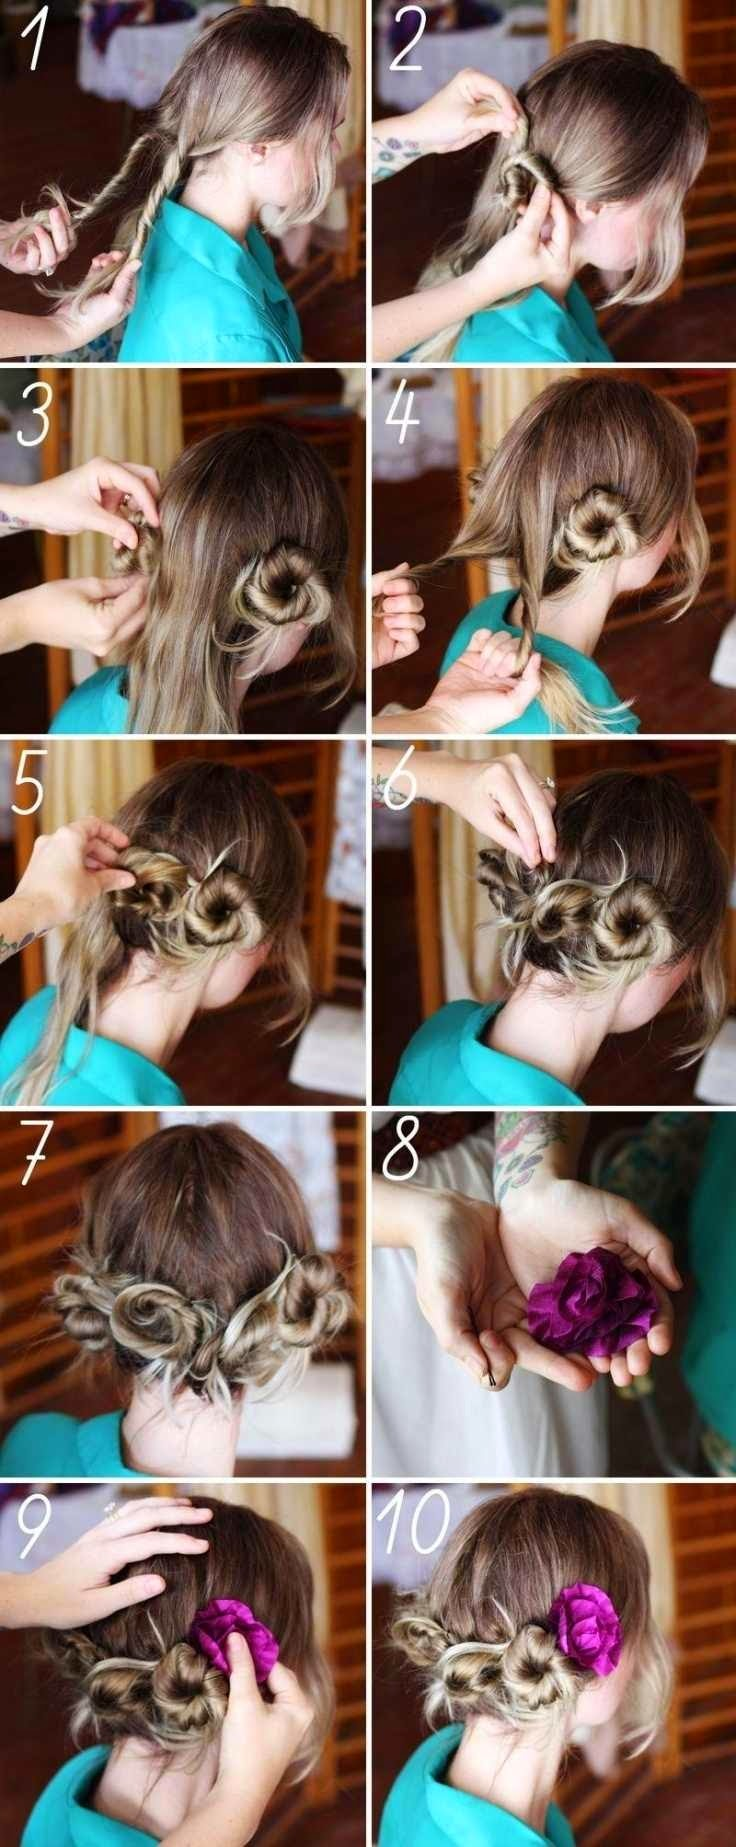 10 Step-By-Step Hair Tutorials With Accessories